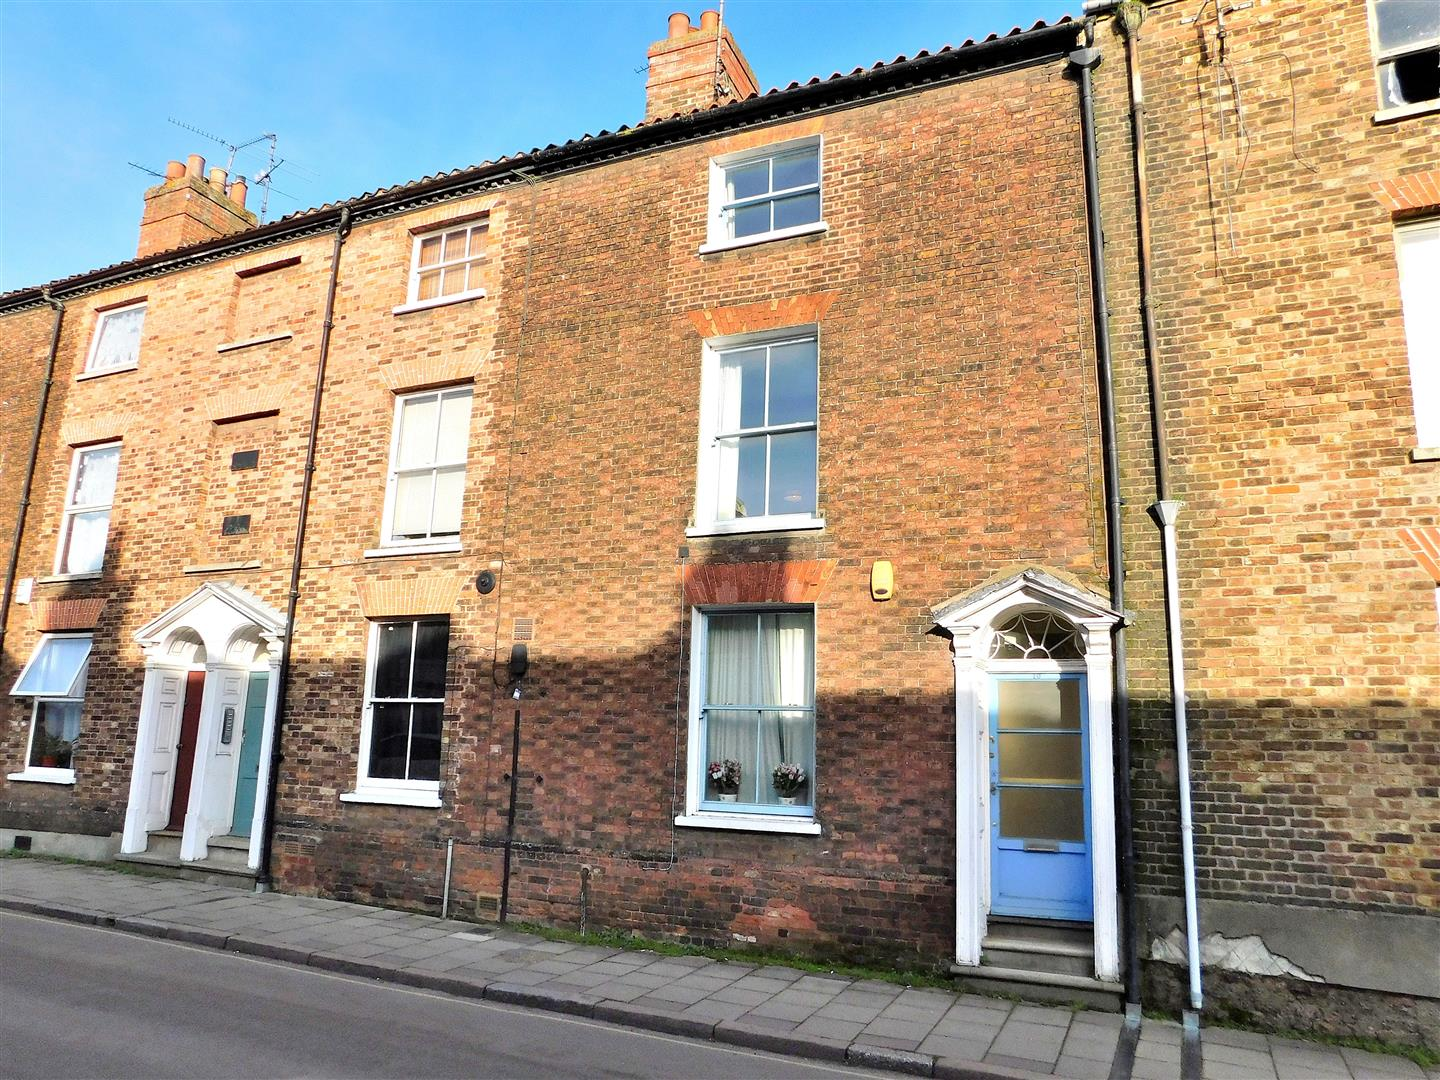 3 bed terraced house for sale in King's Lynn, PE30 5HD, PE30